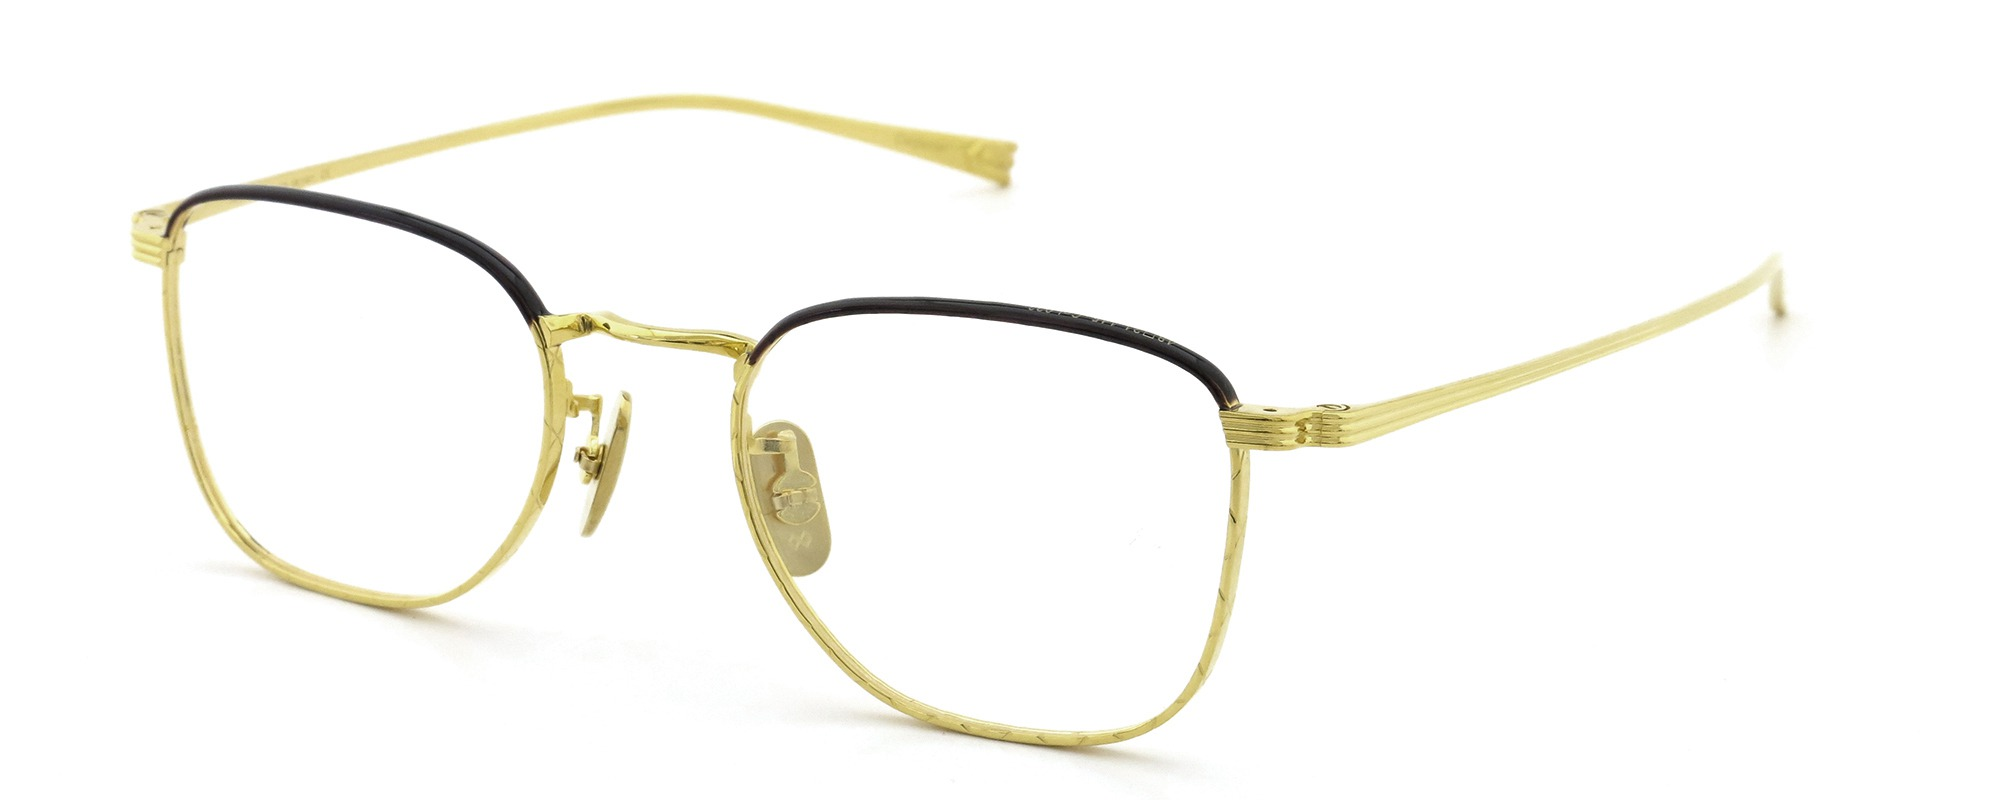 OG × OLIVER GOLDSMITH Carpenter カーペンター